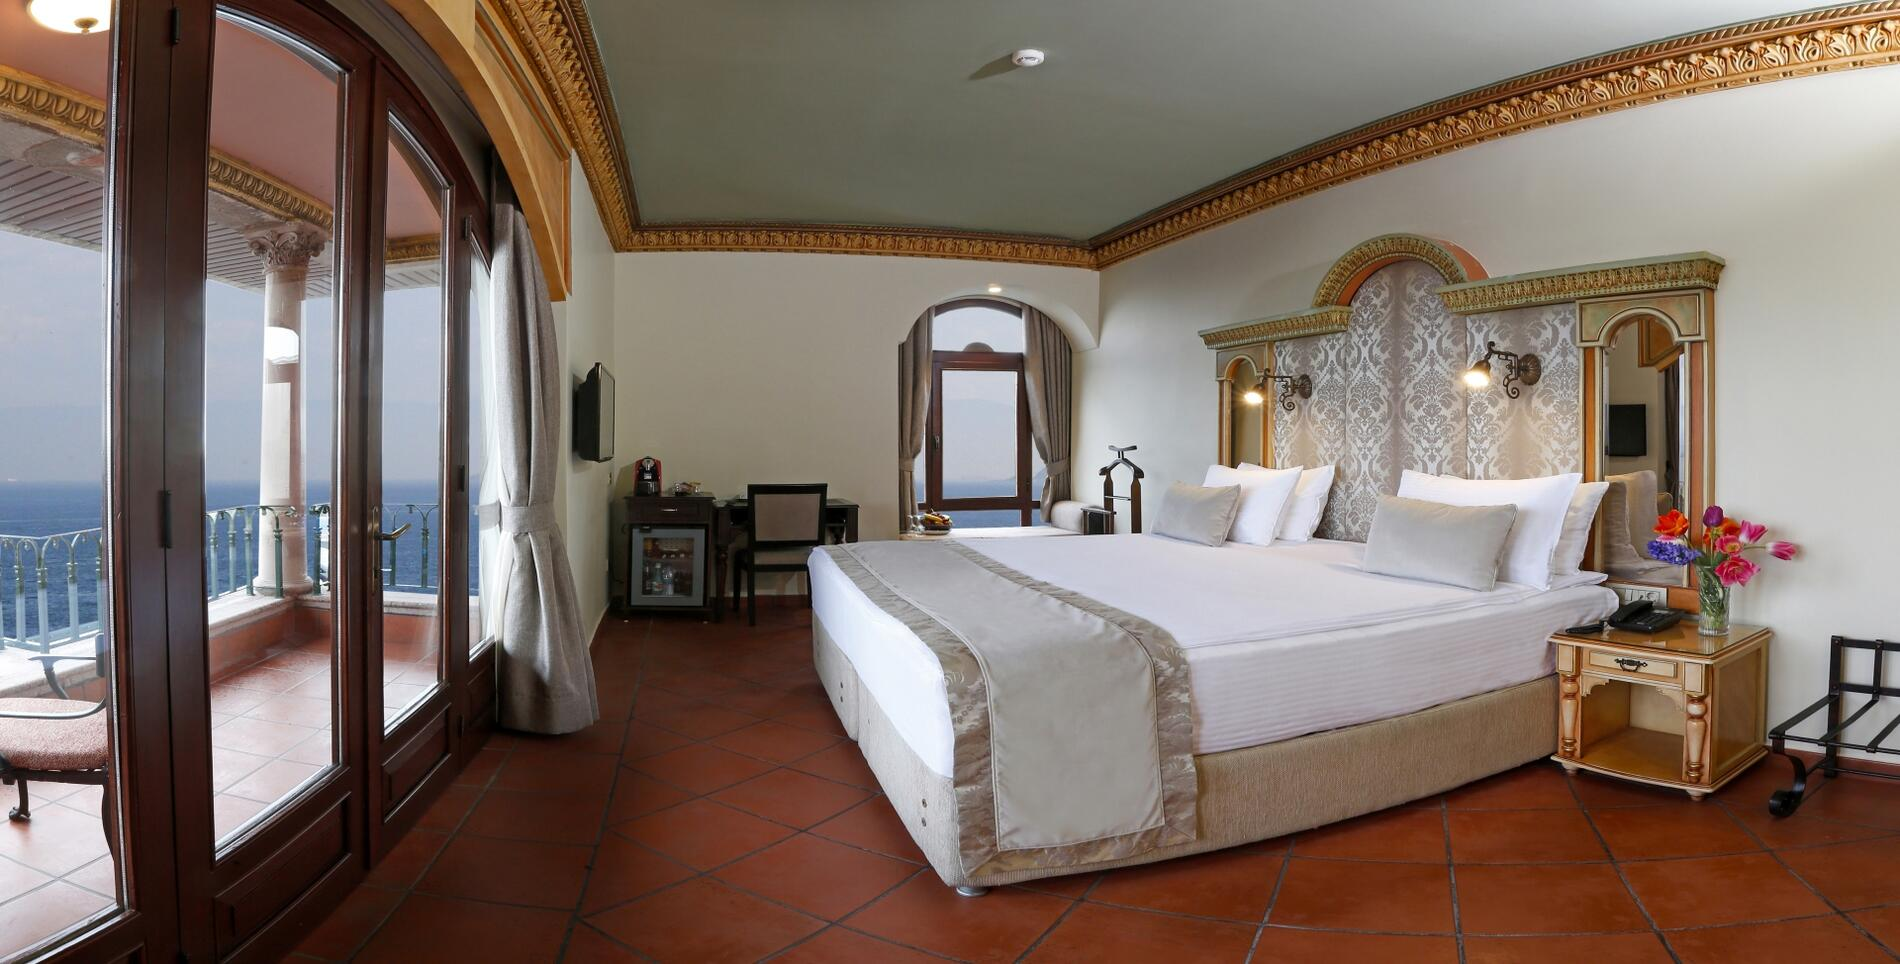 Accommodation at Sultanahmet Palace Hotel in Istanbul